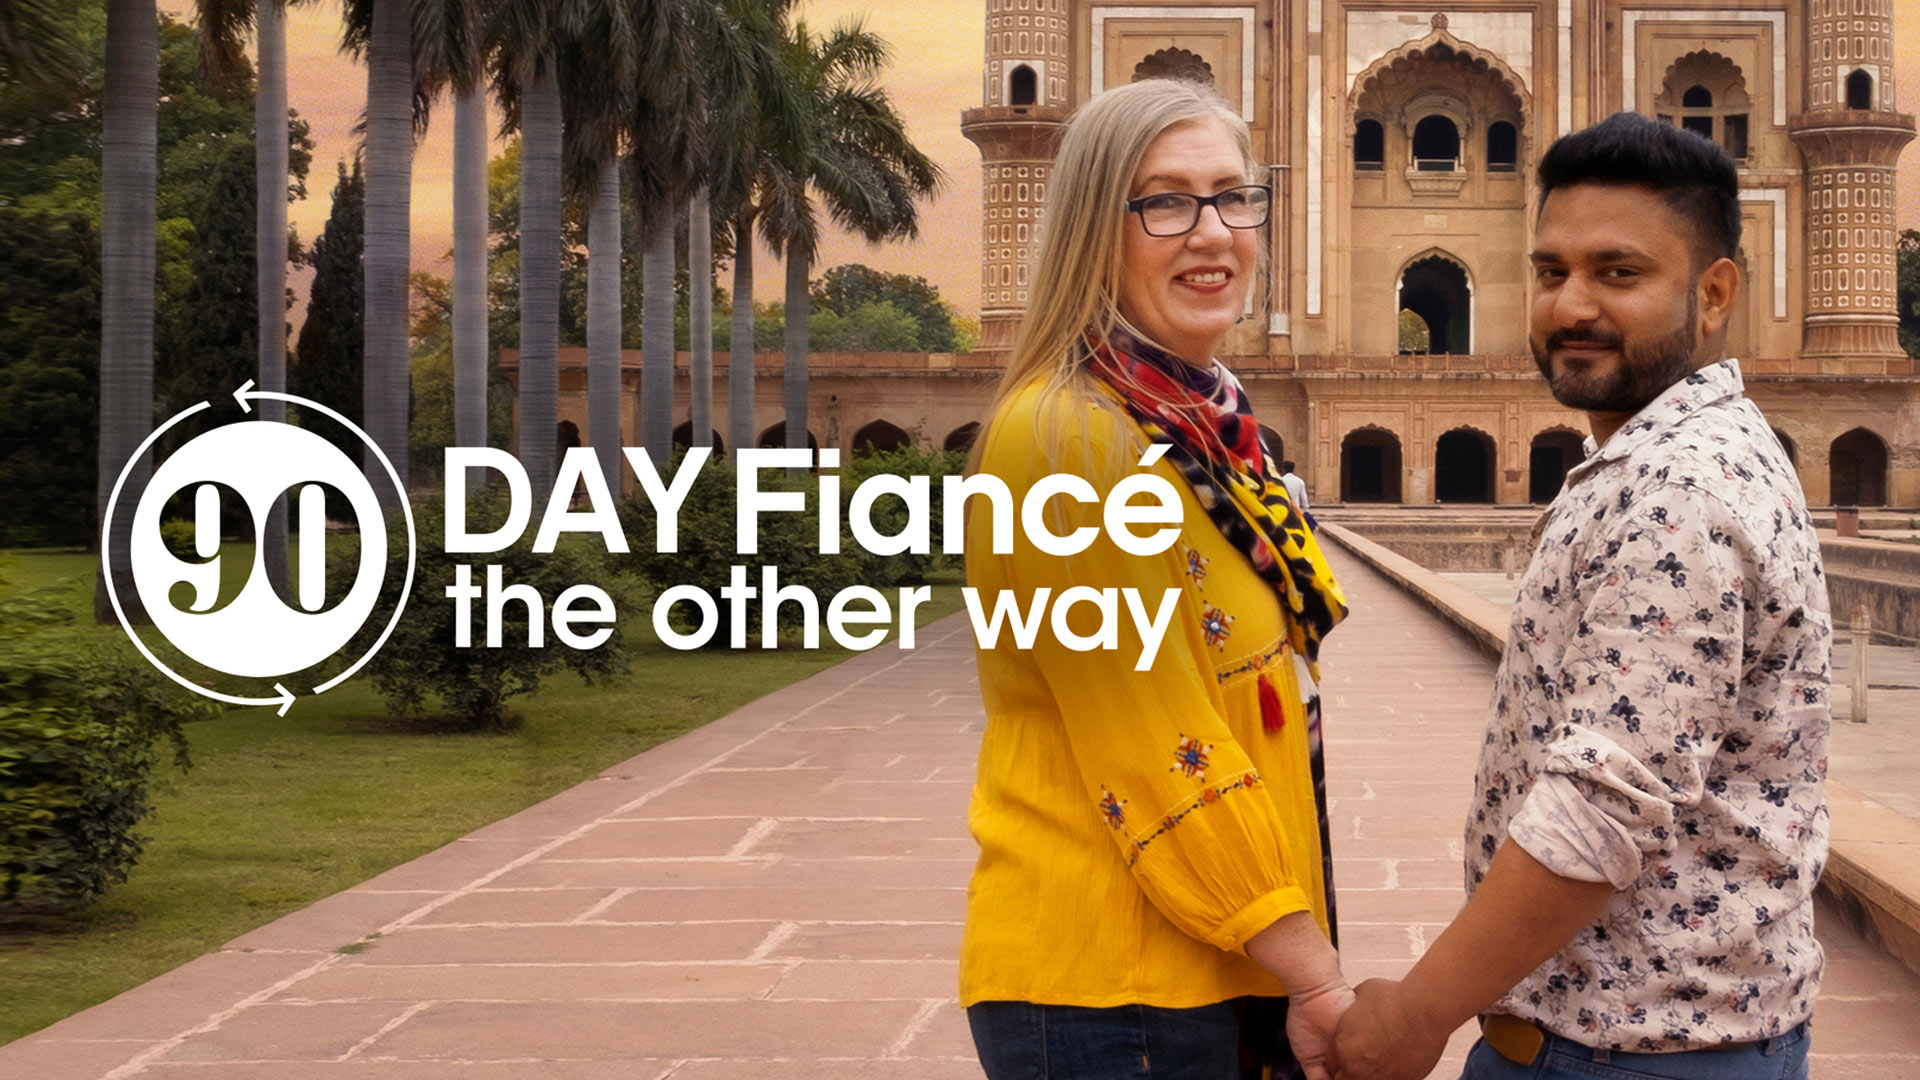 90 Day Fiance: The Other Way - Season 1